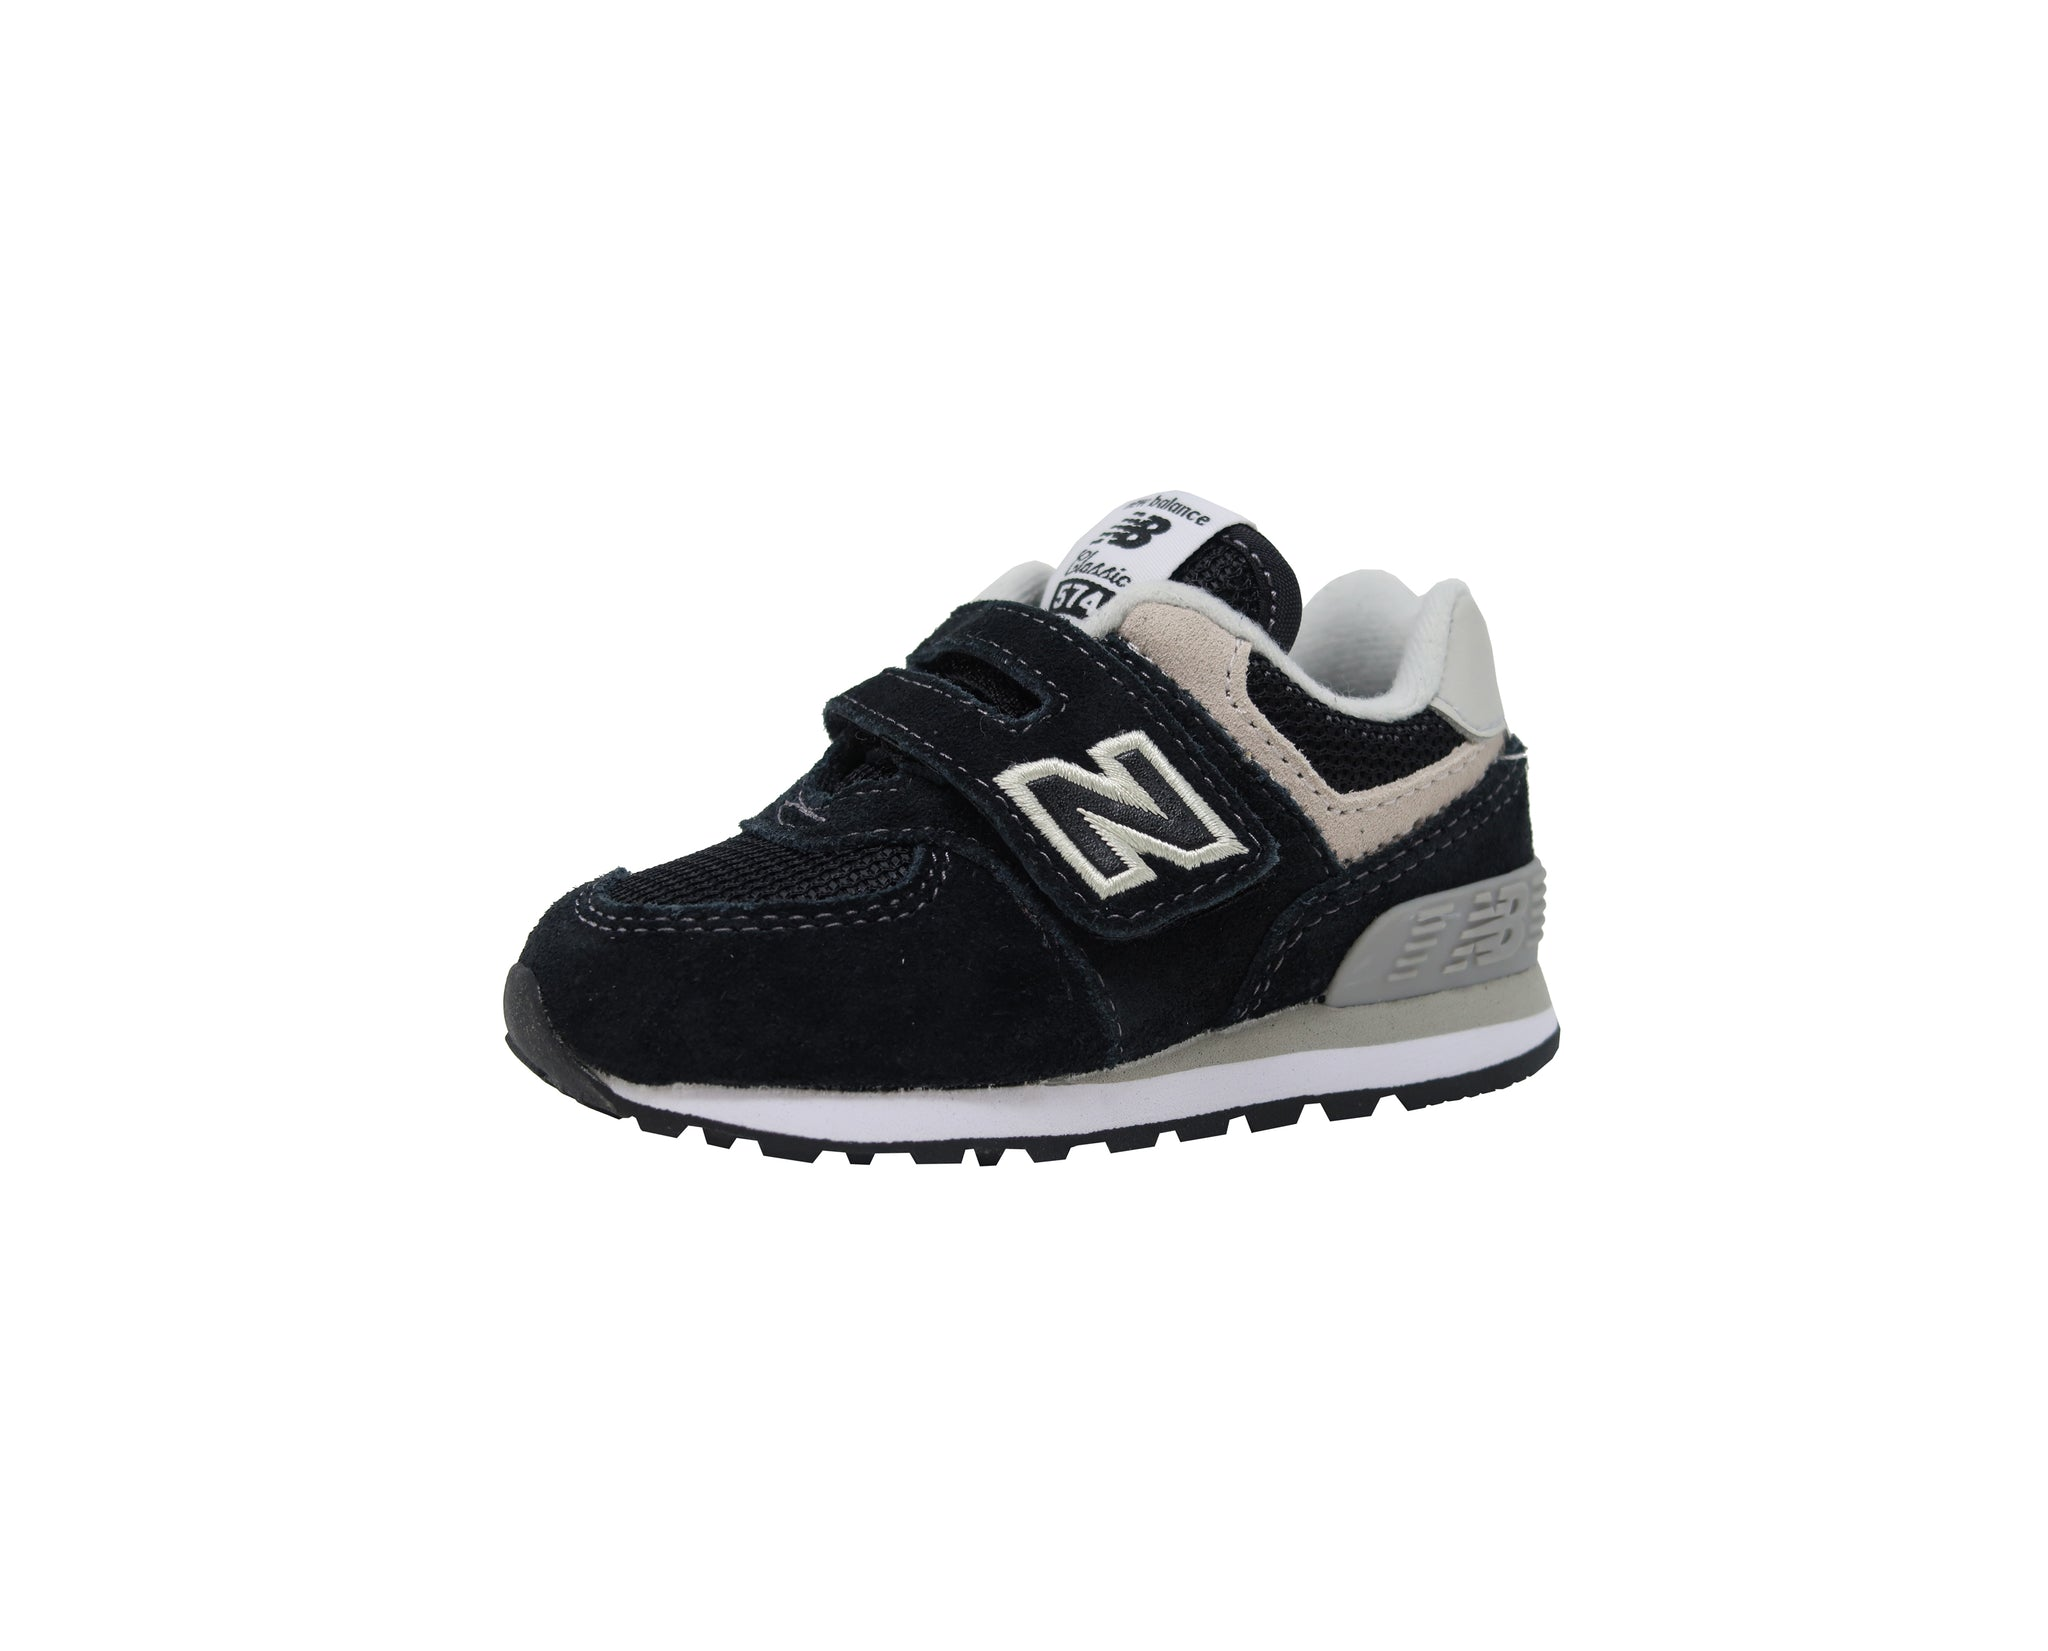 New Balance 574 Black/White Toddler Shoes